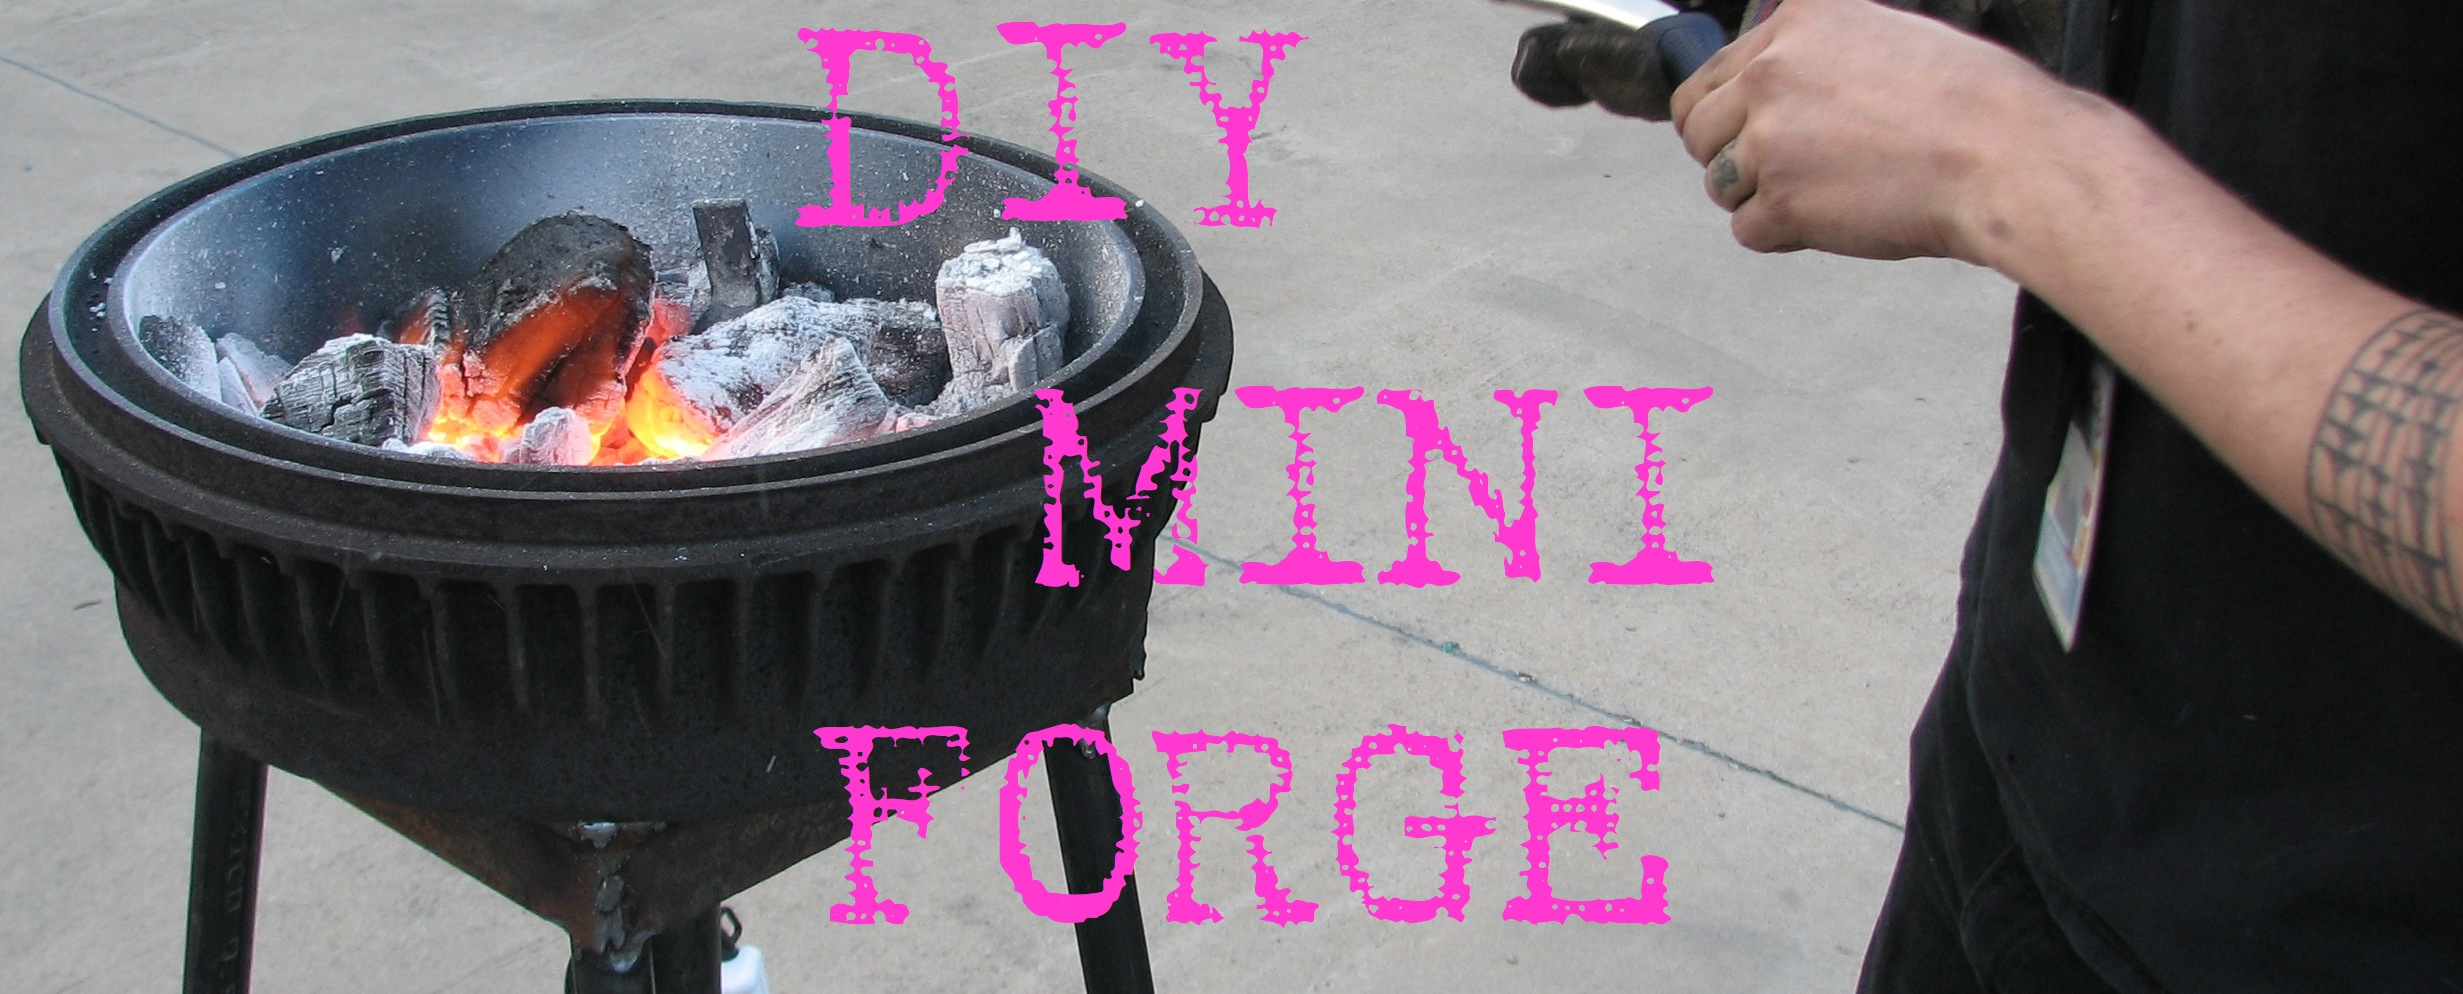 DIY Mini Forge